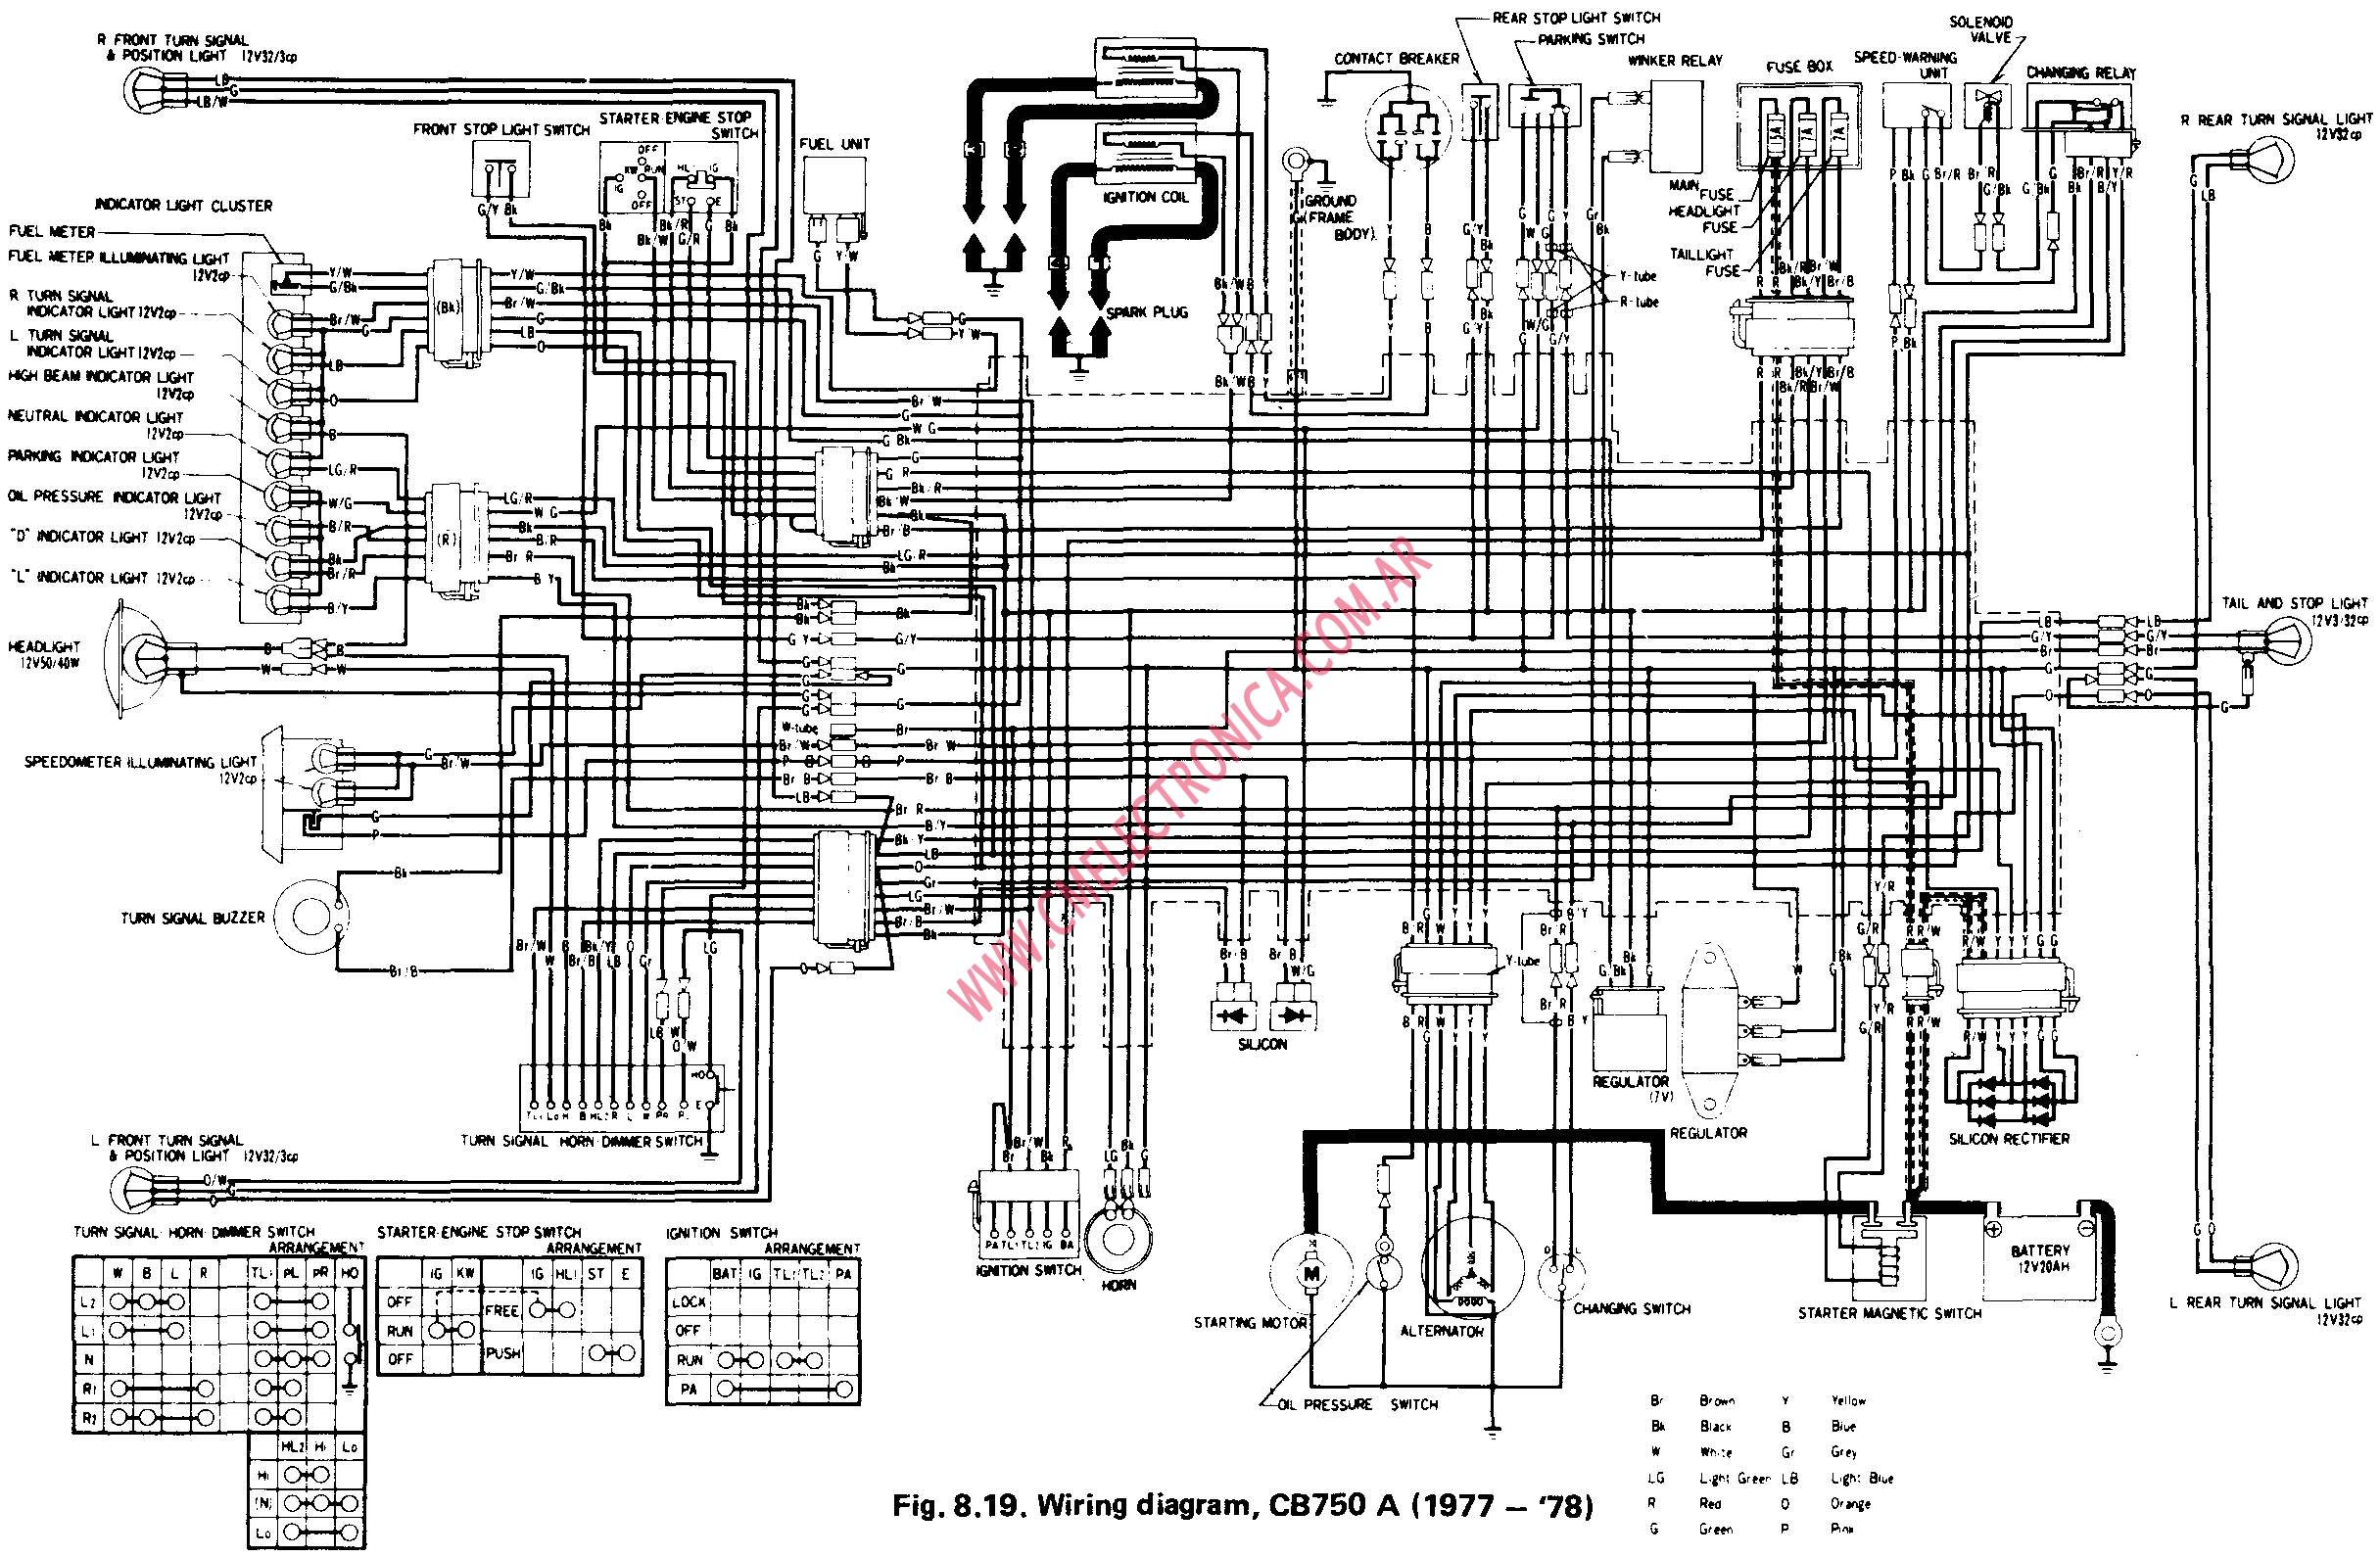 1977 Ford F100 Wiring Diagram, 1977, Get Free Image About